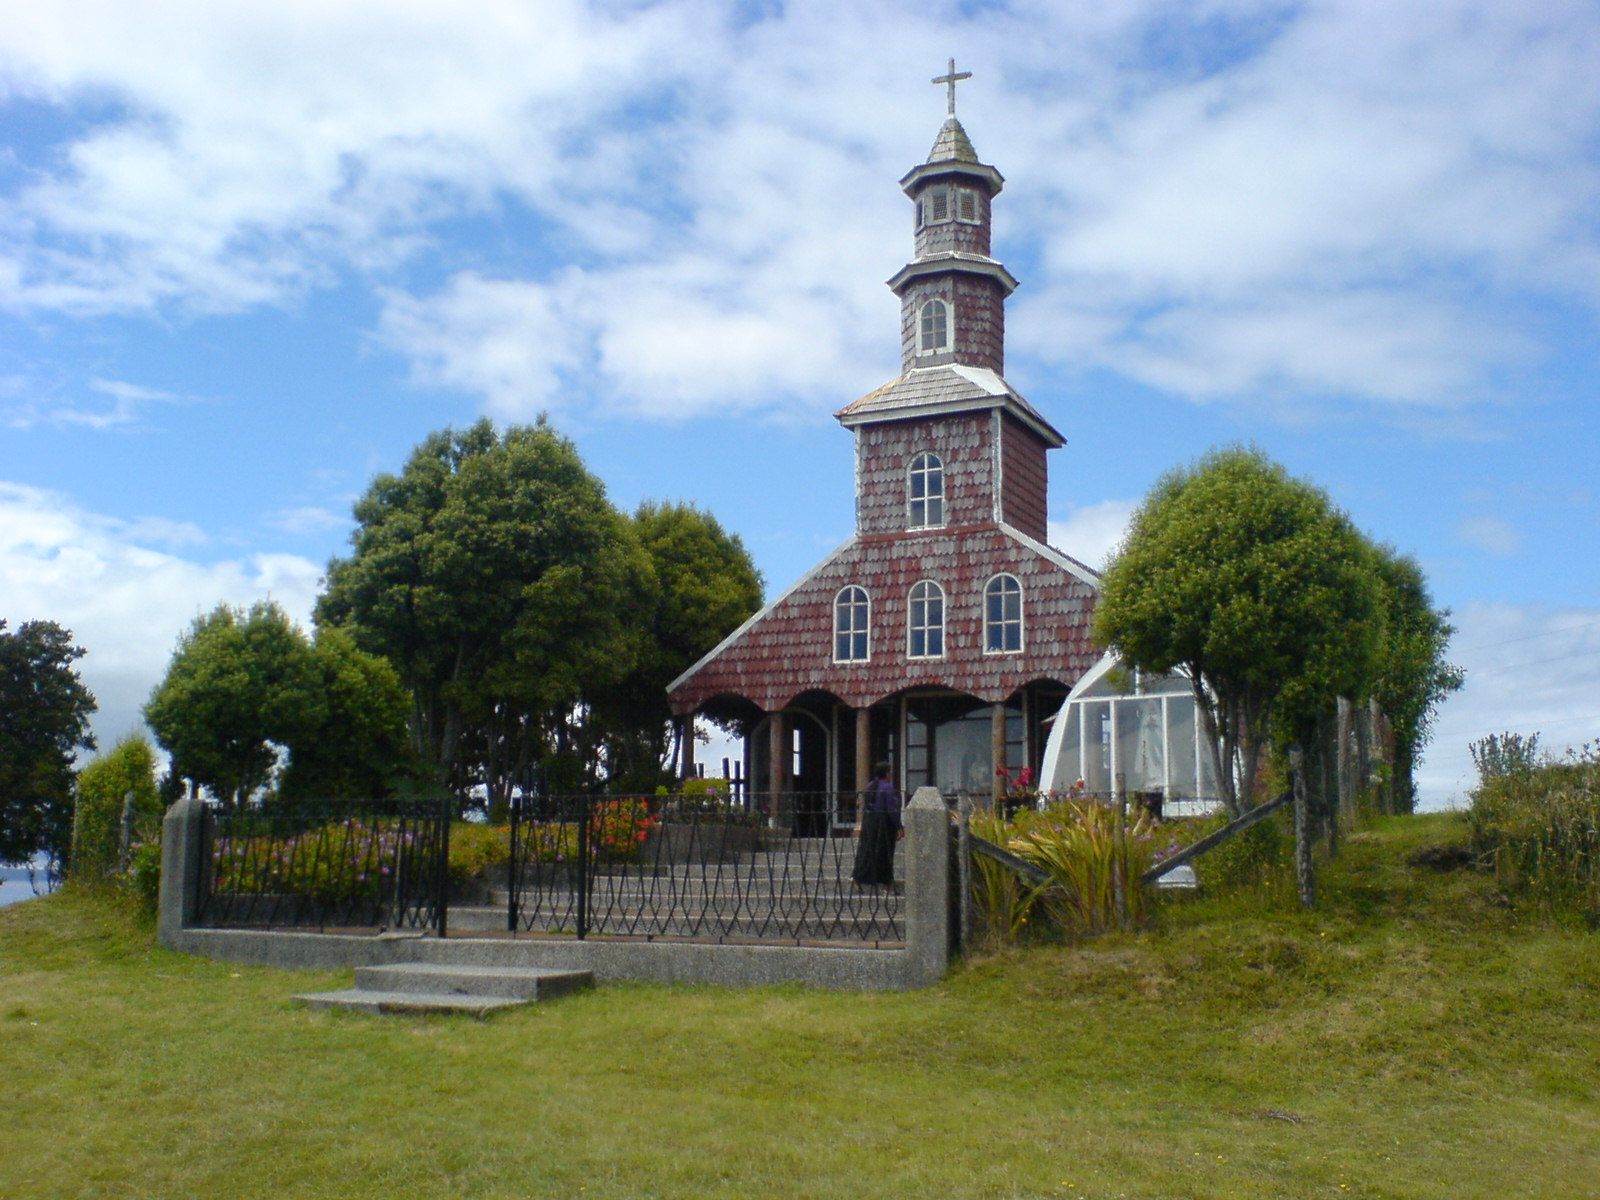 Chiloe, photo by Dominio publico